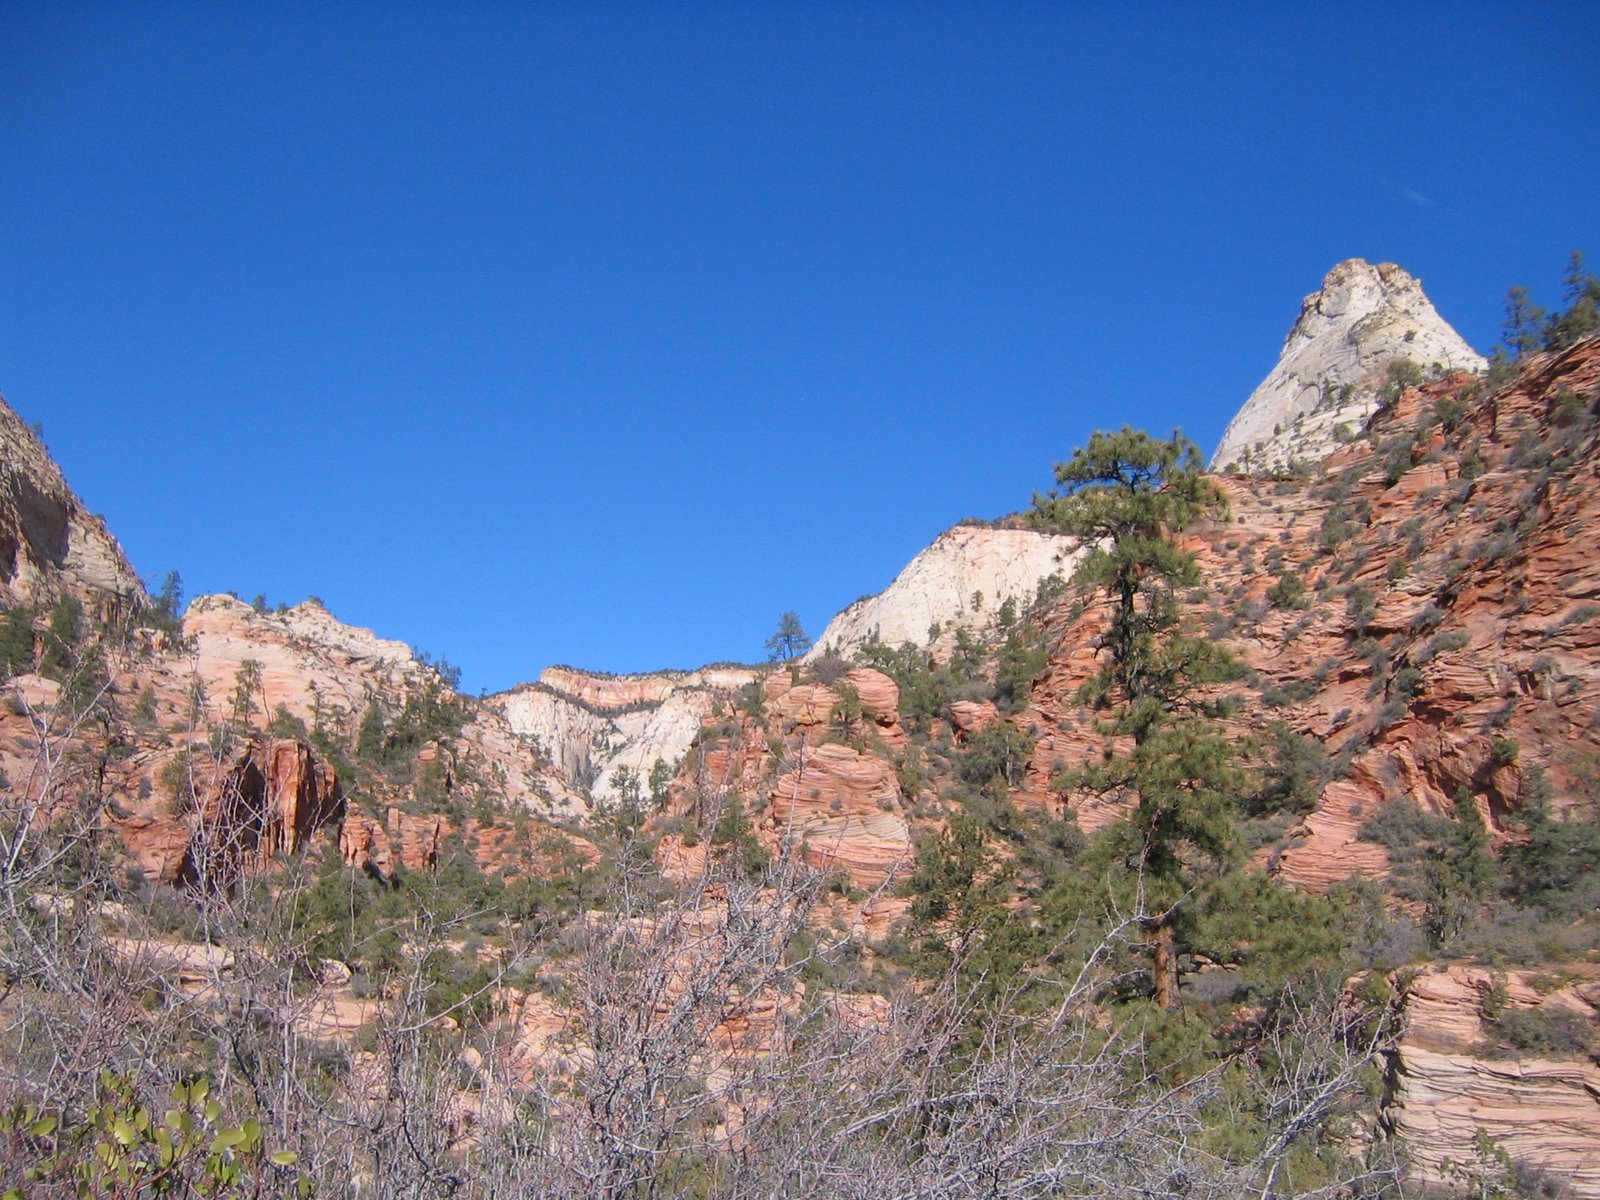 The east side of Zion National Park.